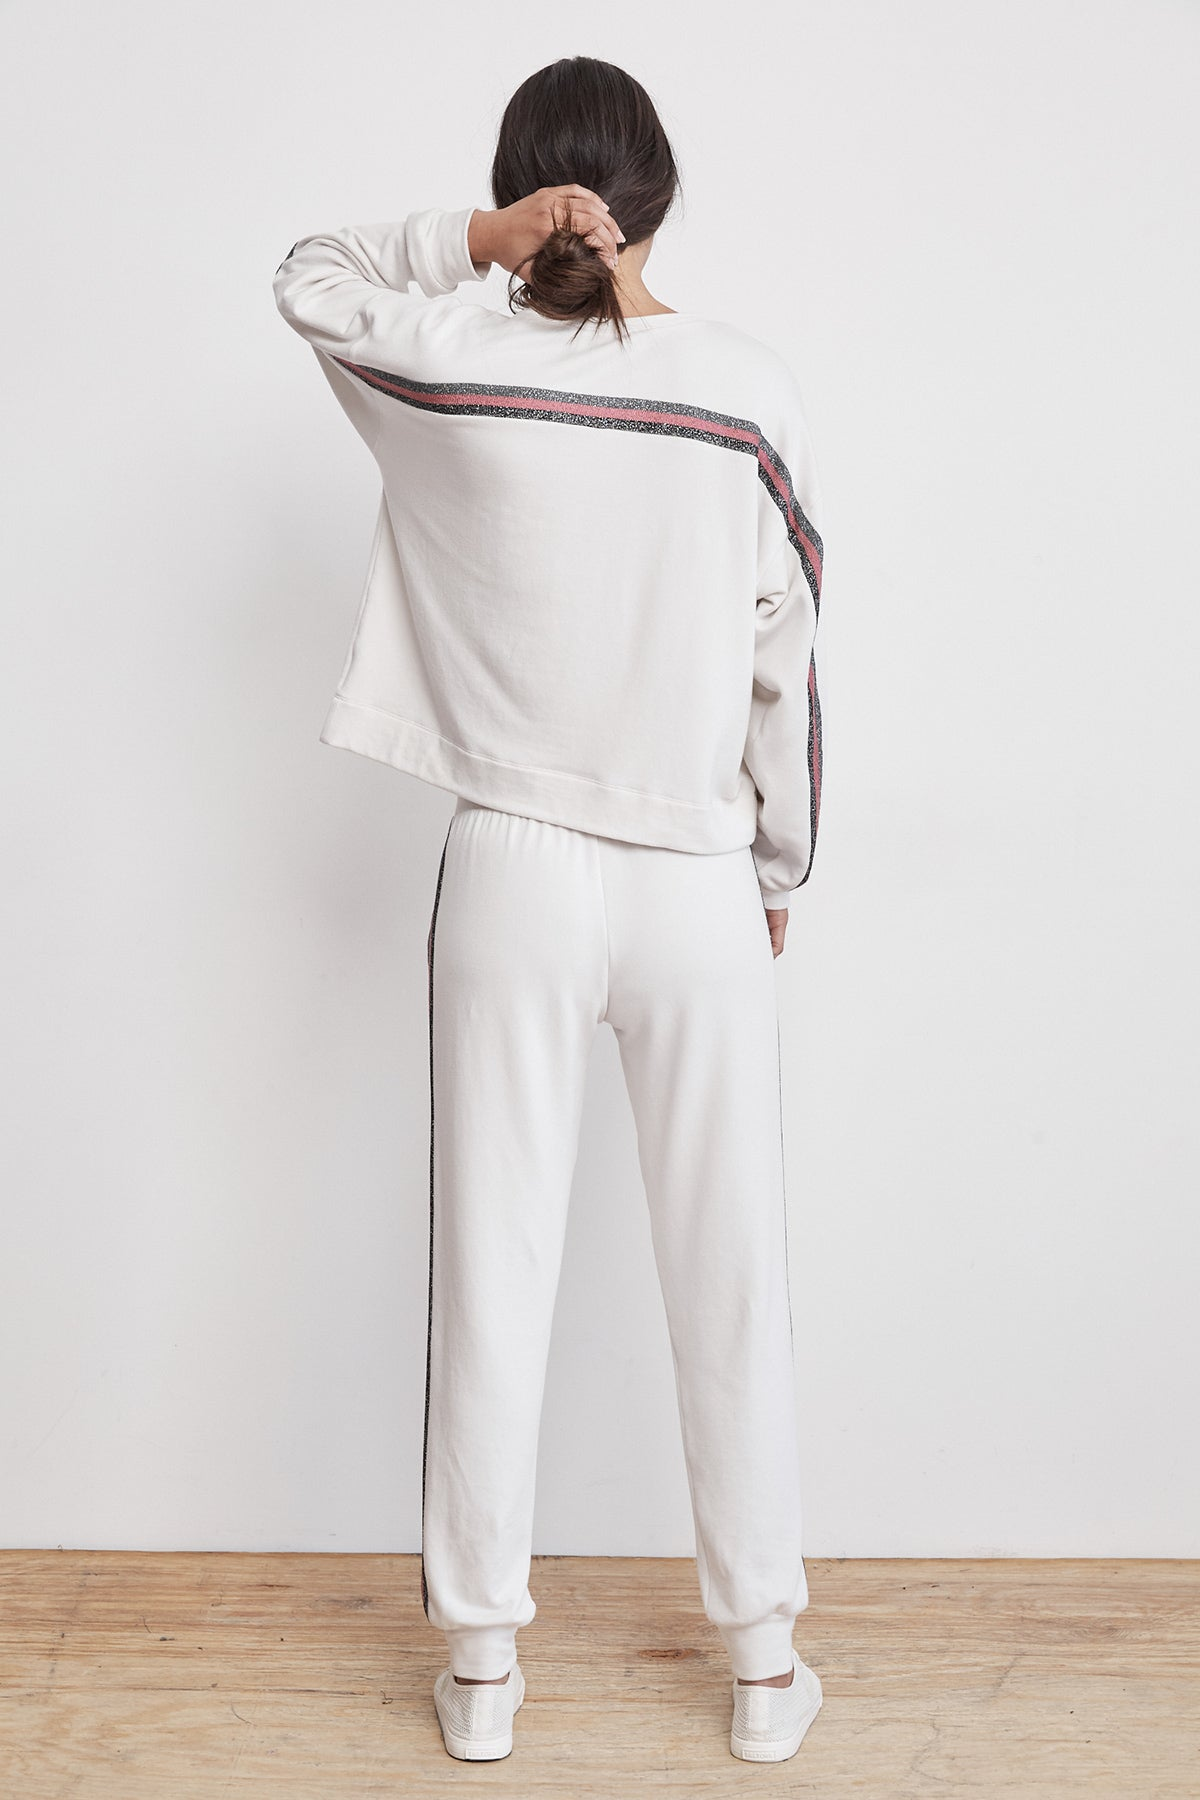 JETTA METALLIC TRIM LUXE FLEECE SWEATPANT